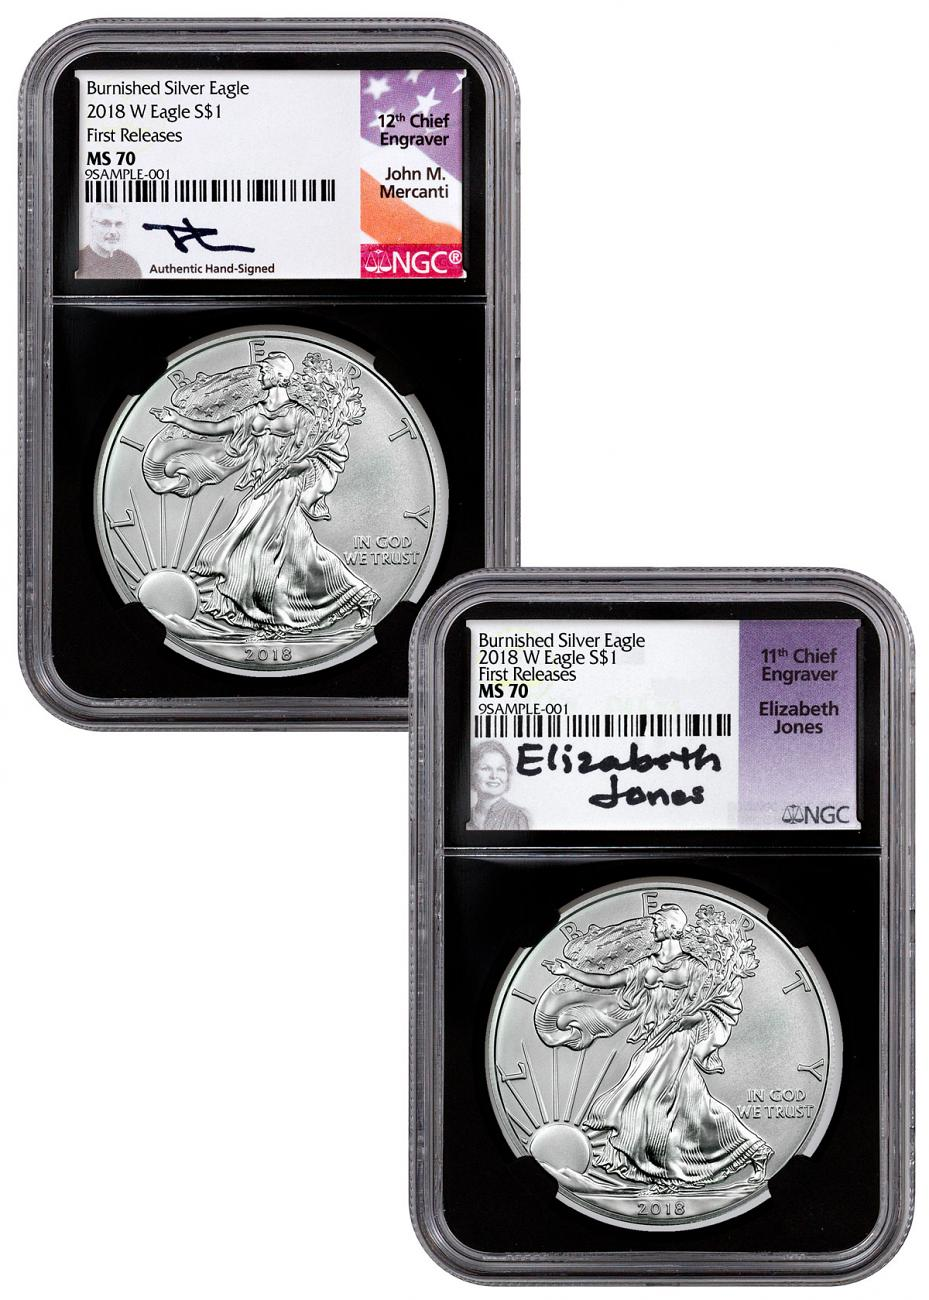 2-Coin Set - 2018-W Burnished American Silver Eagle NGC MS70 FR Black Core Holder Mercanti + Jones Signed Labels